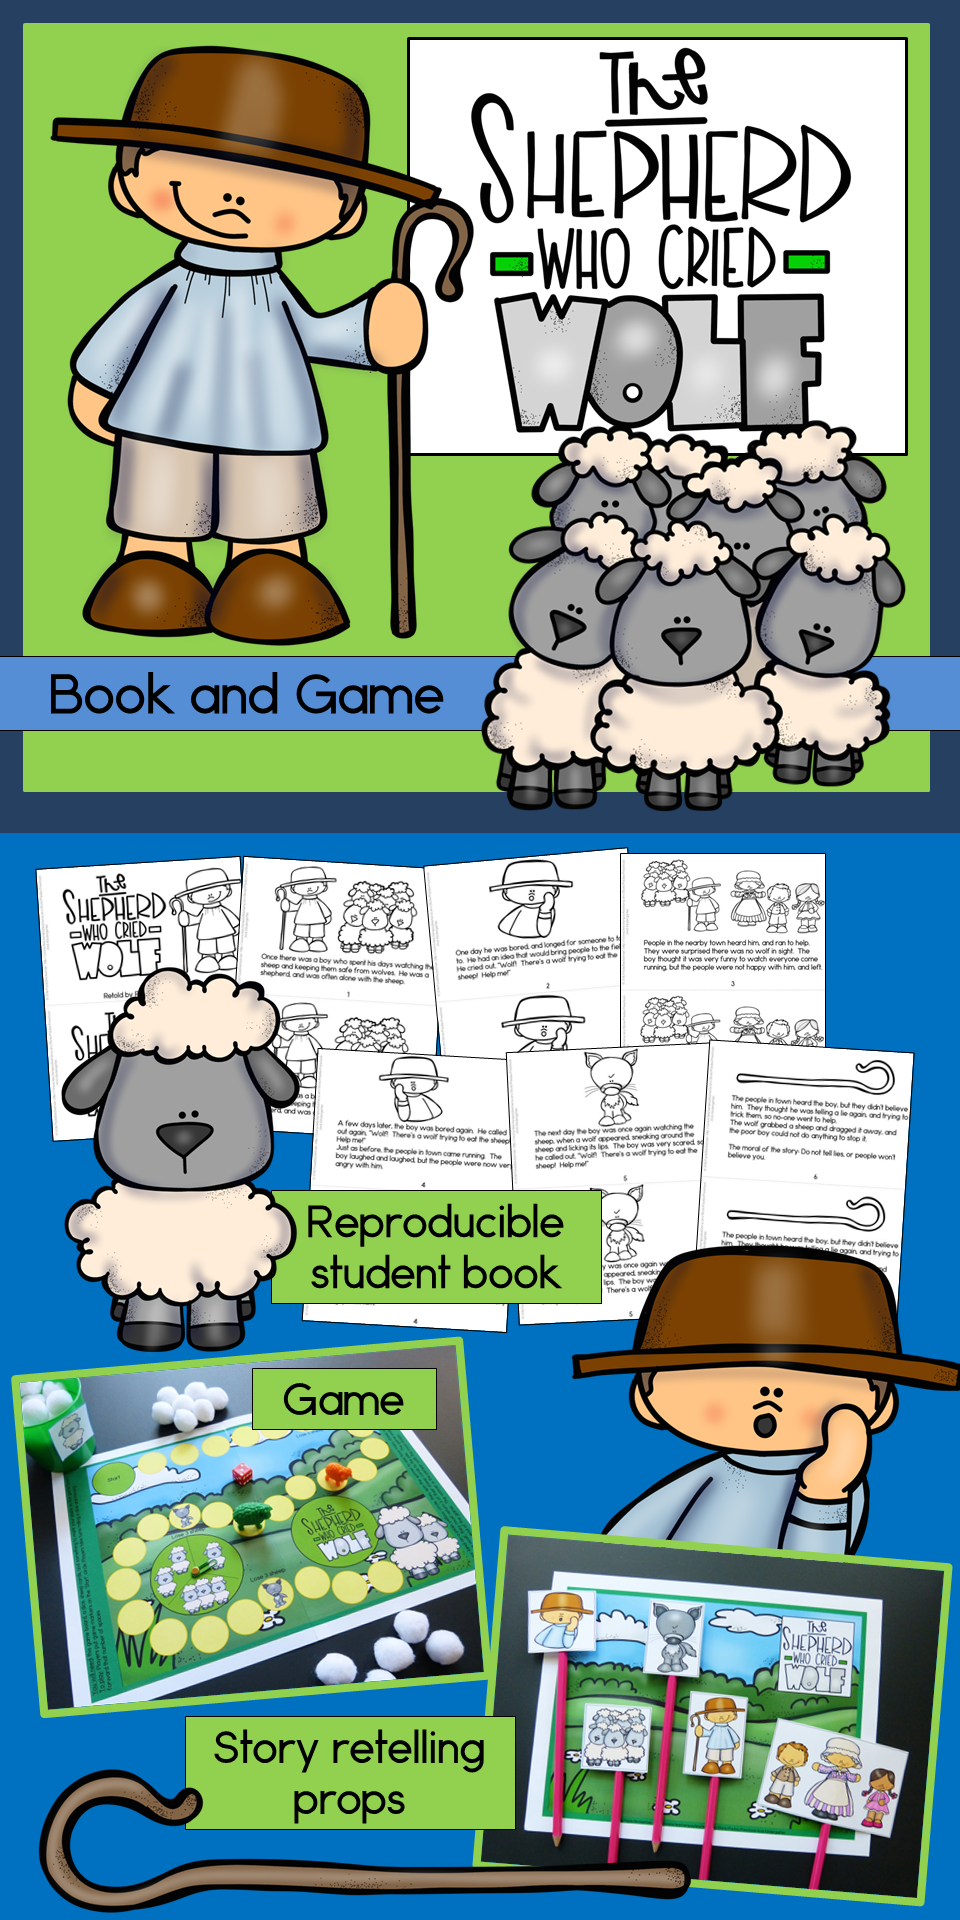 A reproducible student book, story retelling / puppet show kit, and fun reading game for Aesop's fable: The Shepherd Who Cried Wolf.   What a fun reading activity - my kids will love this! ($)